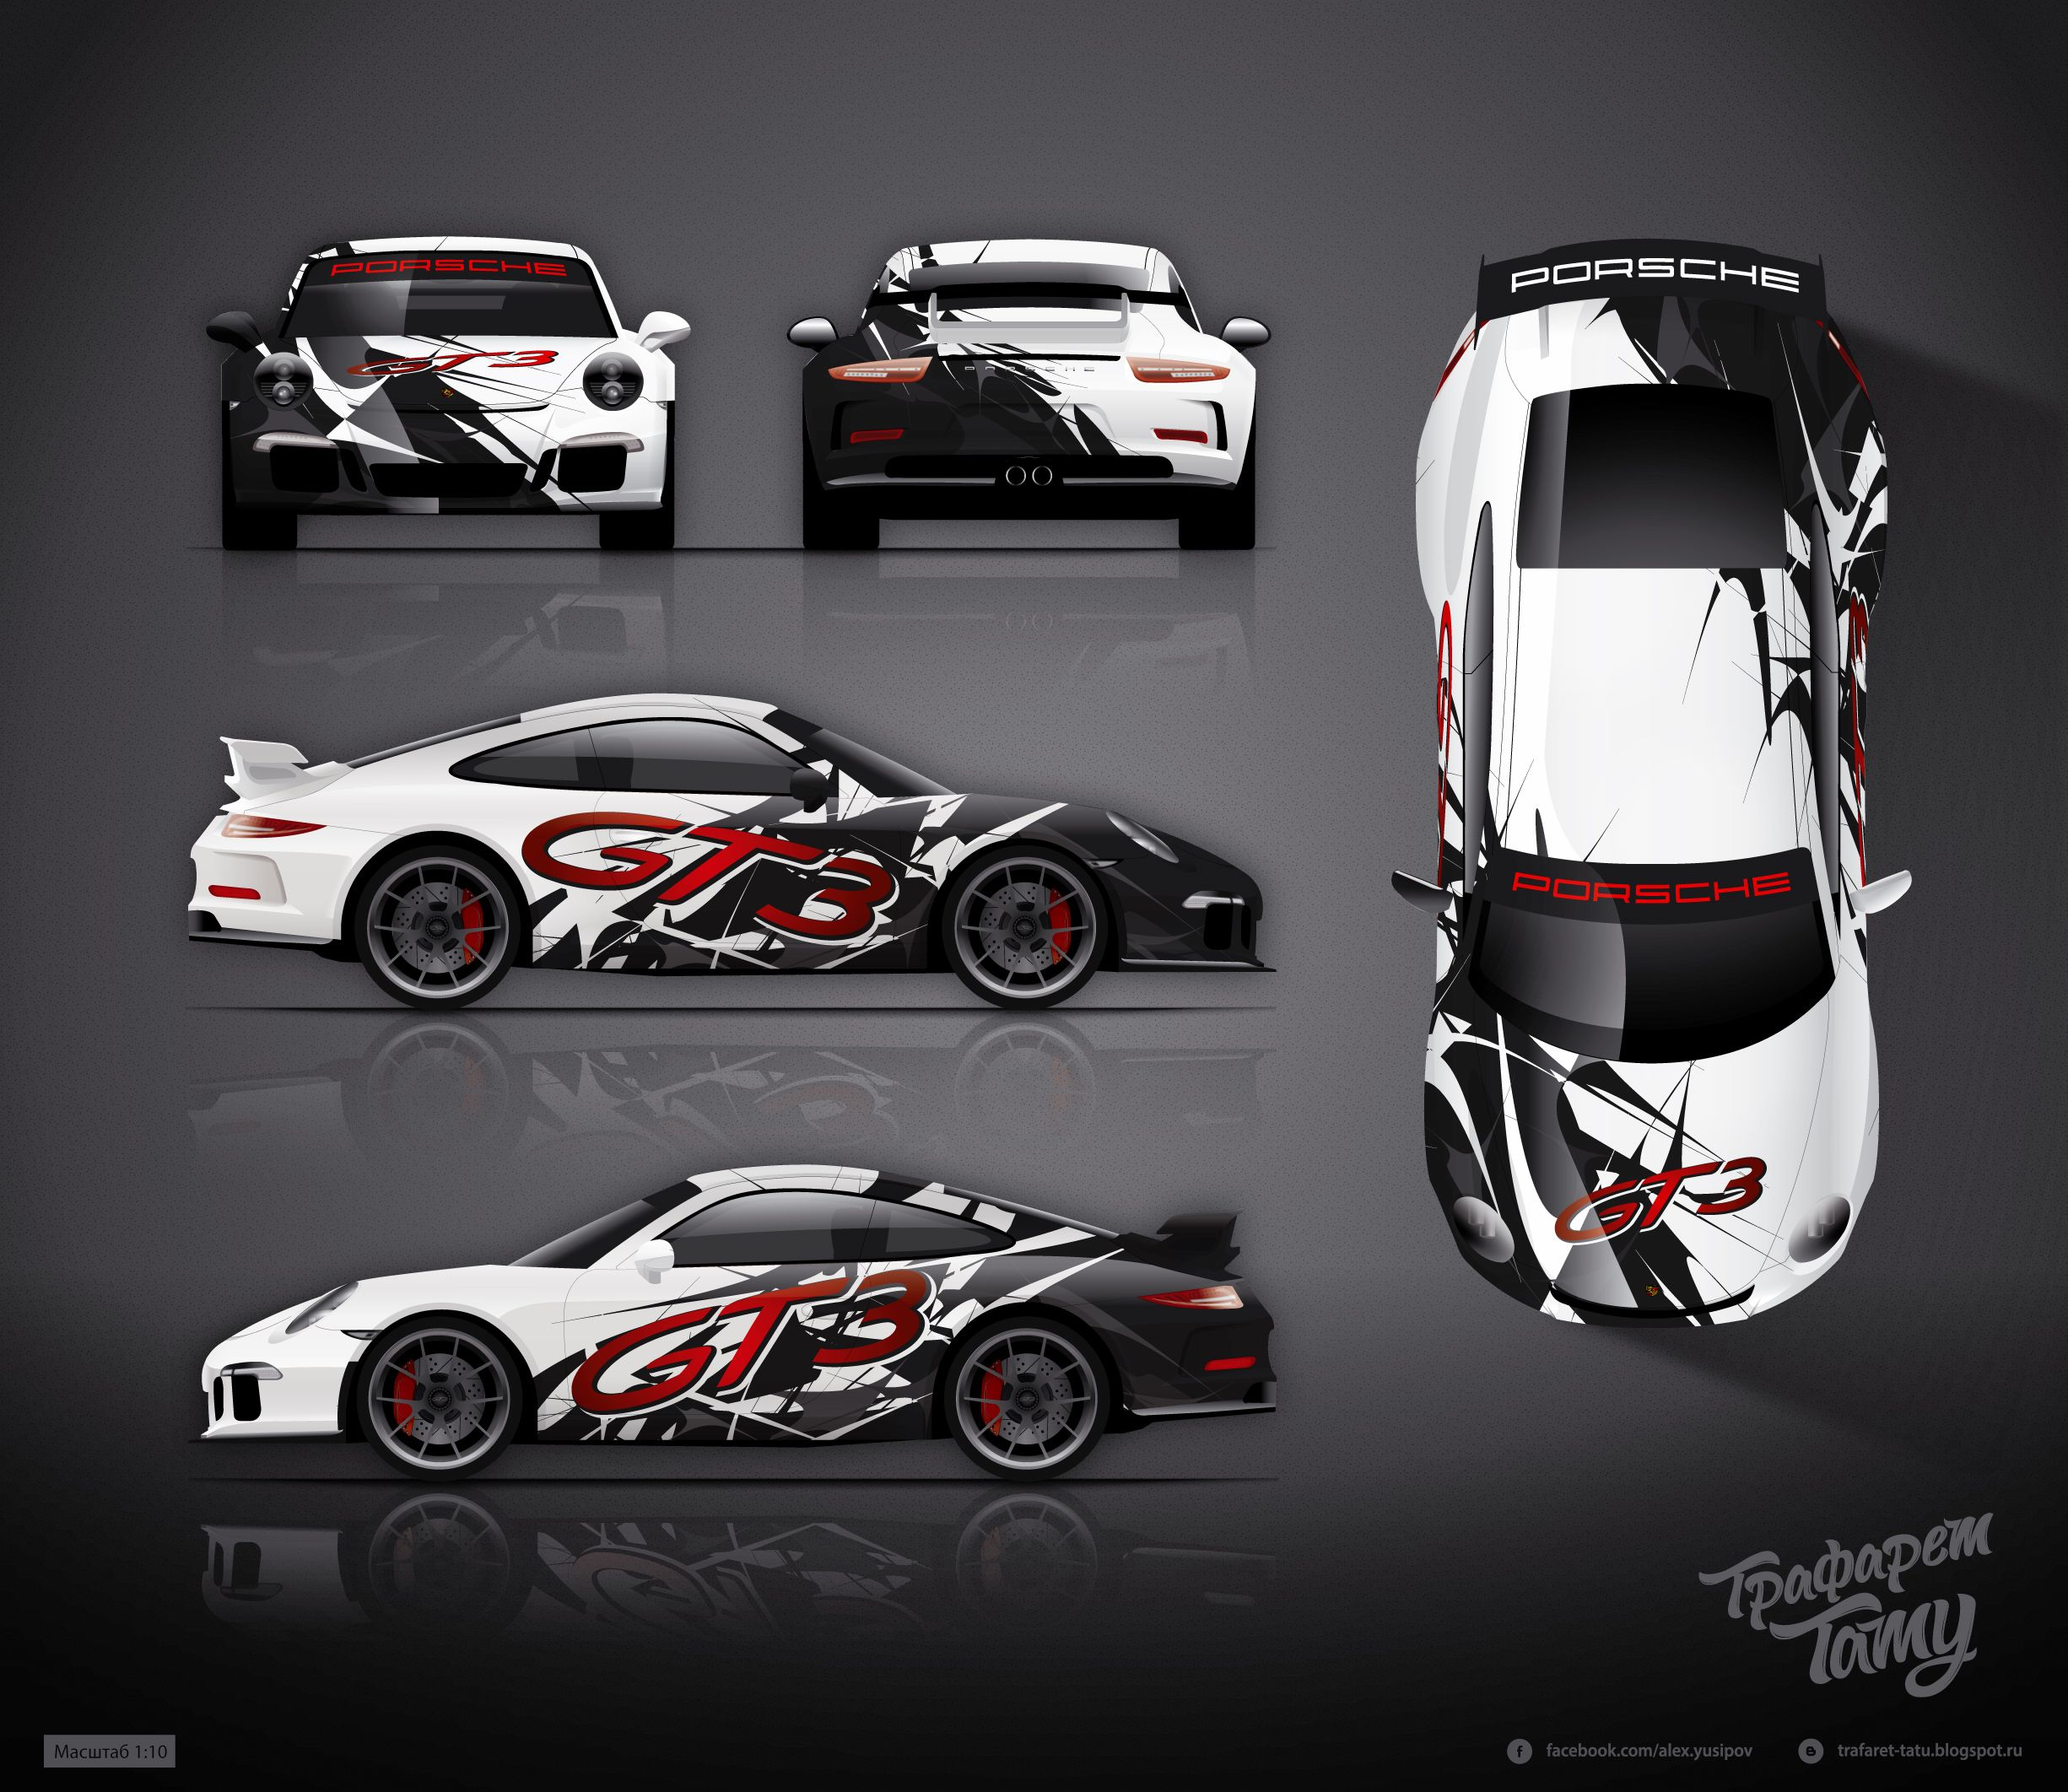 Car sticker design pinterest - Approved New Livery Design For Porsche 911 Gt3